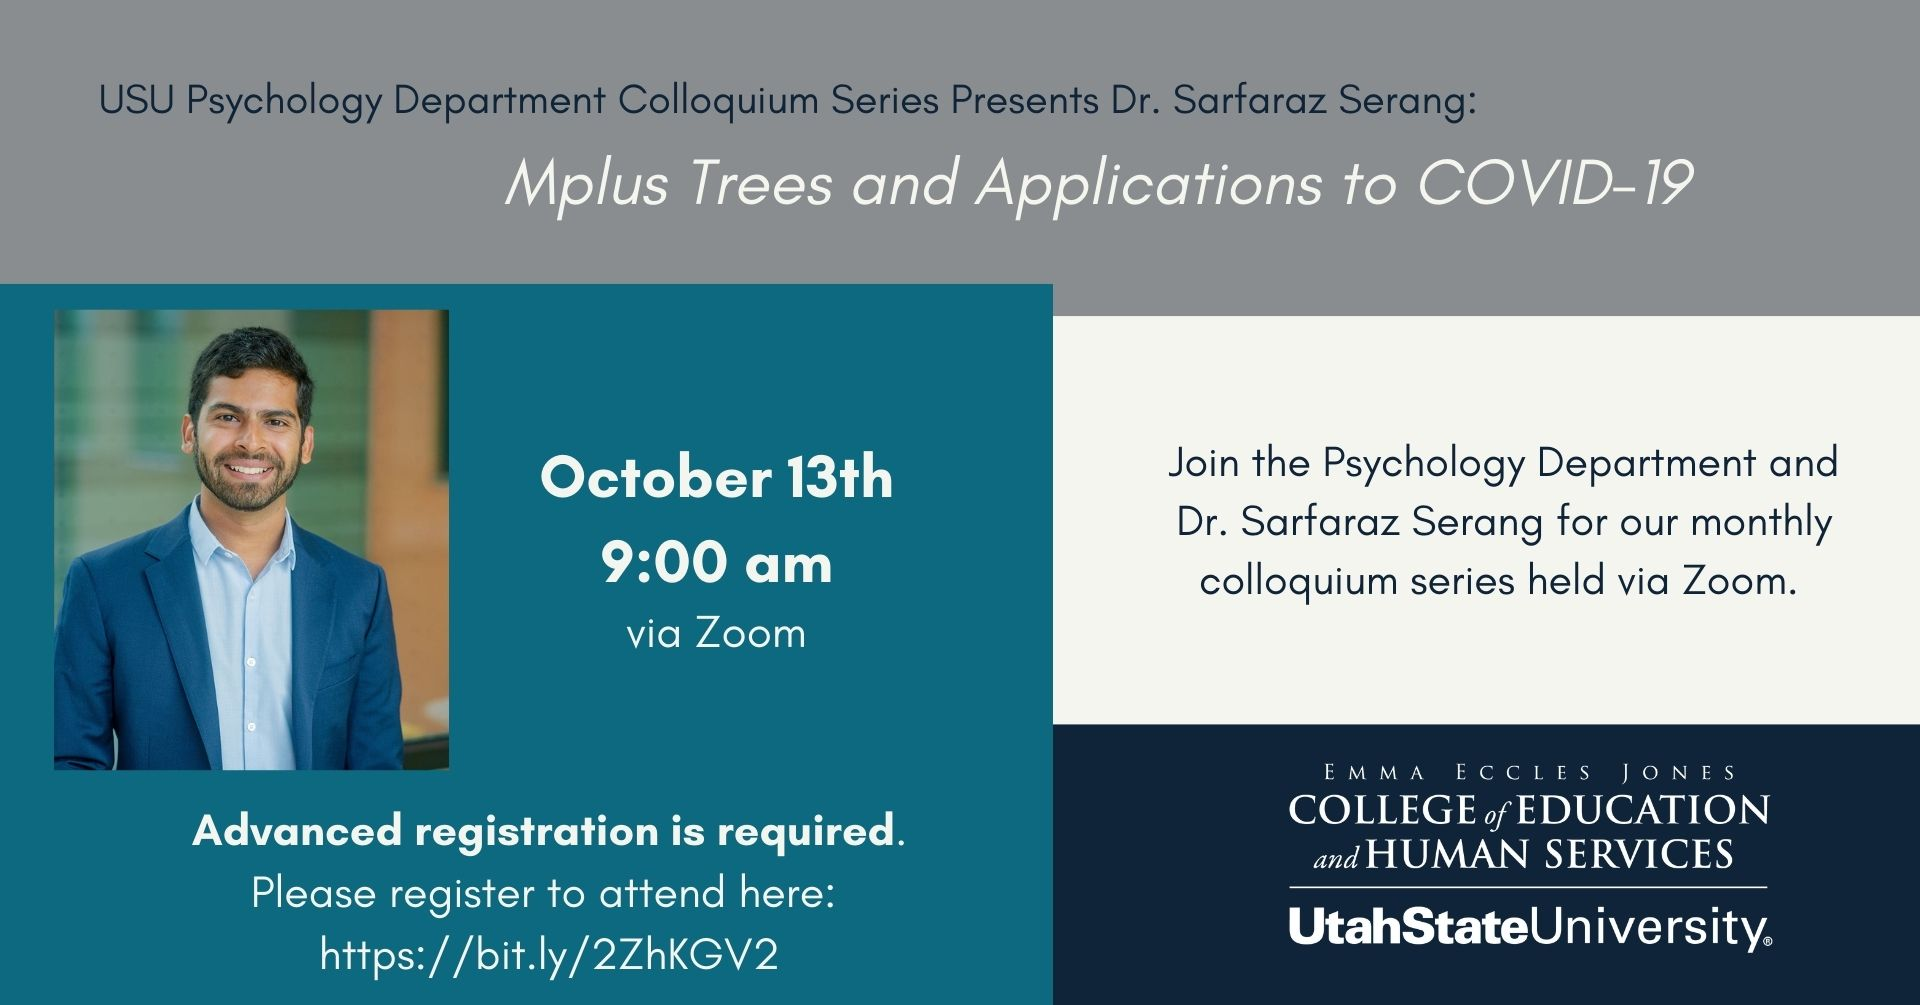 Mplus Trees and Applications to COVID-19